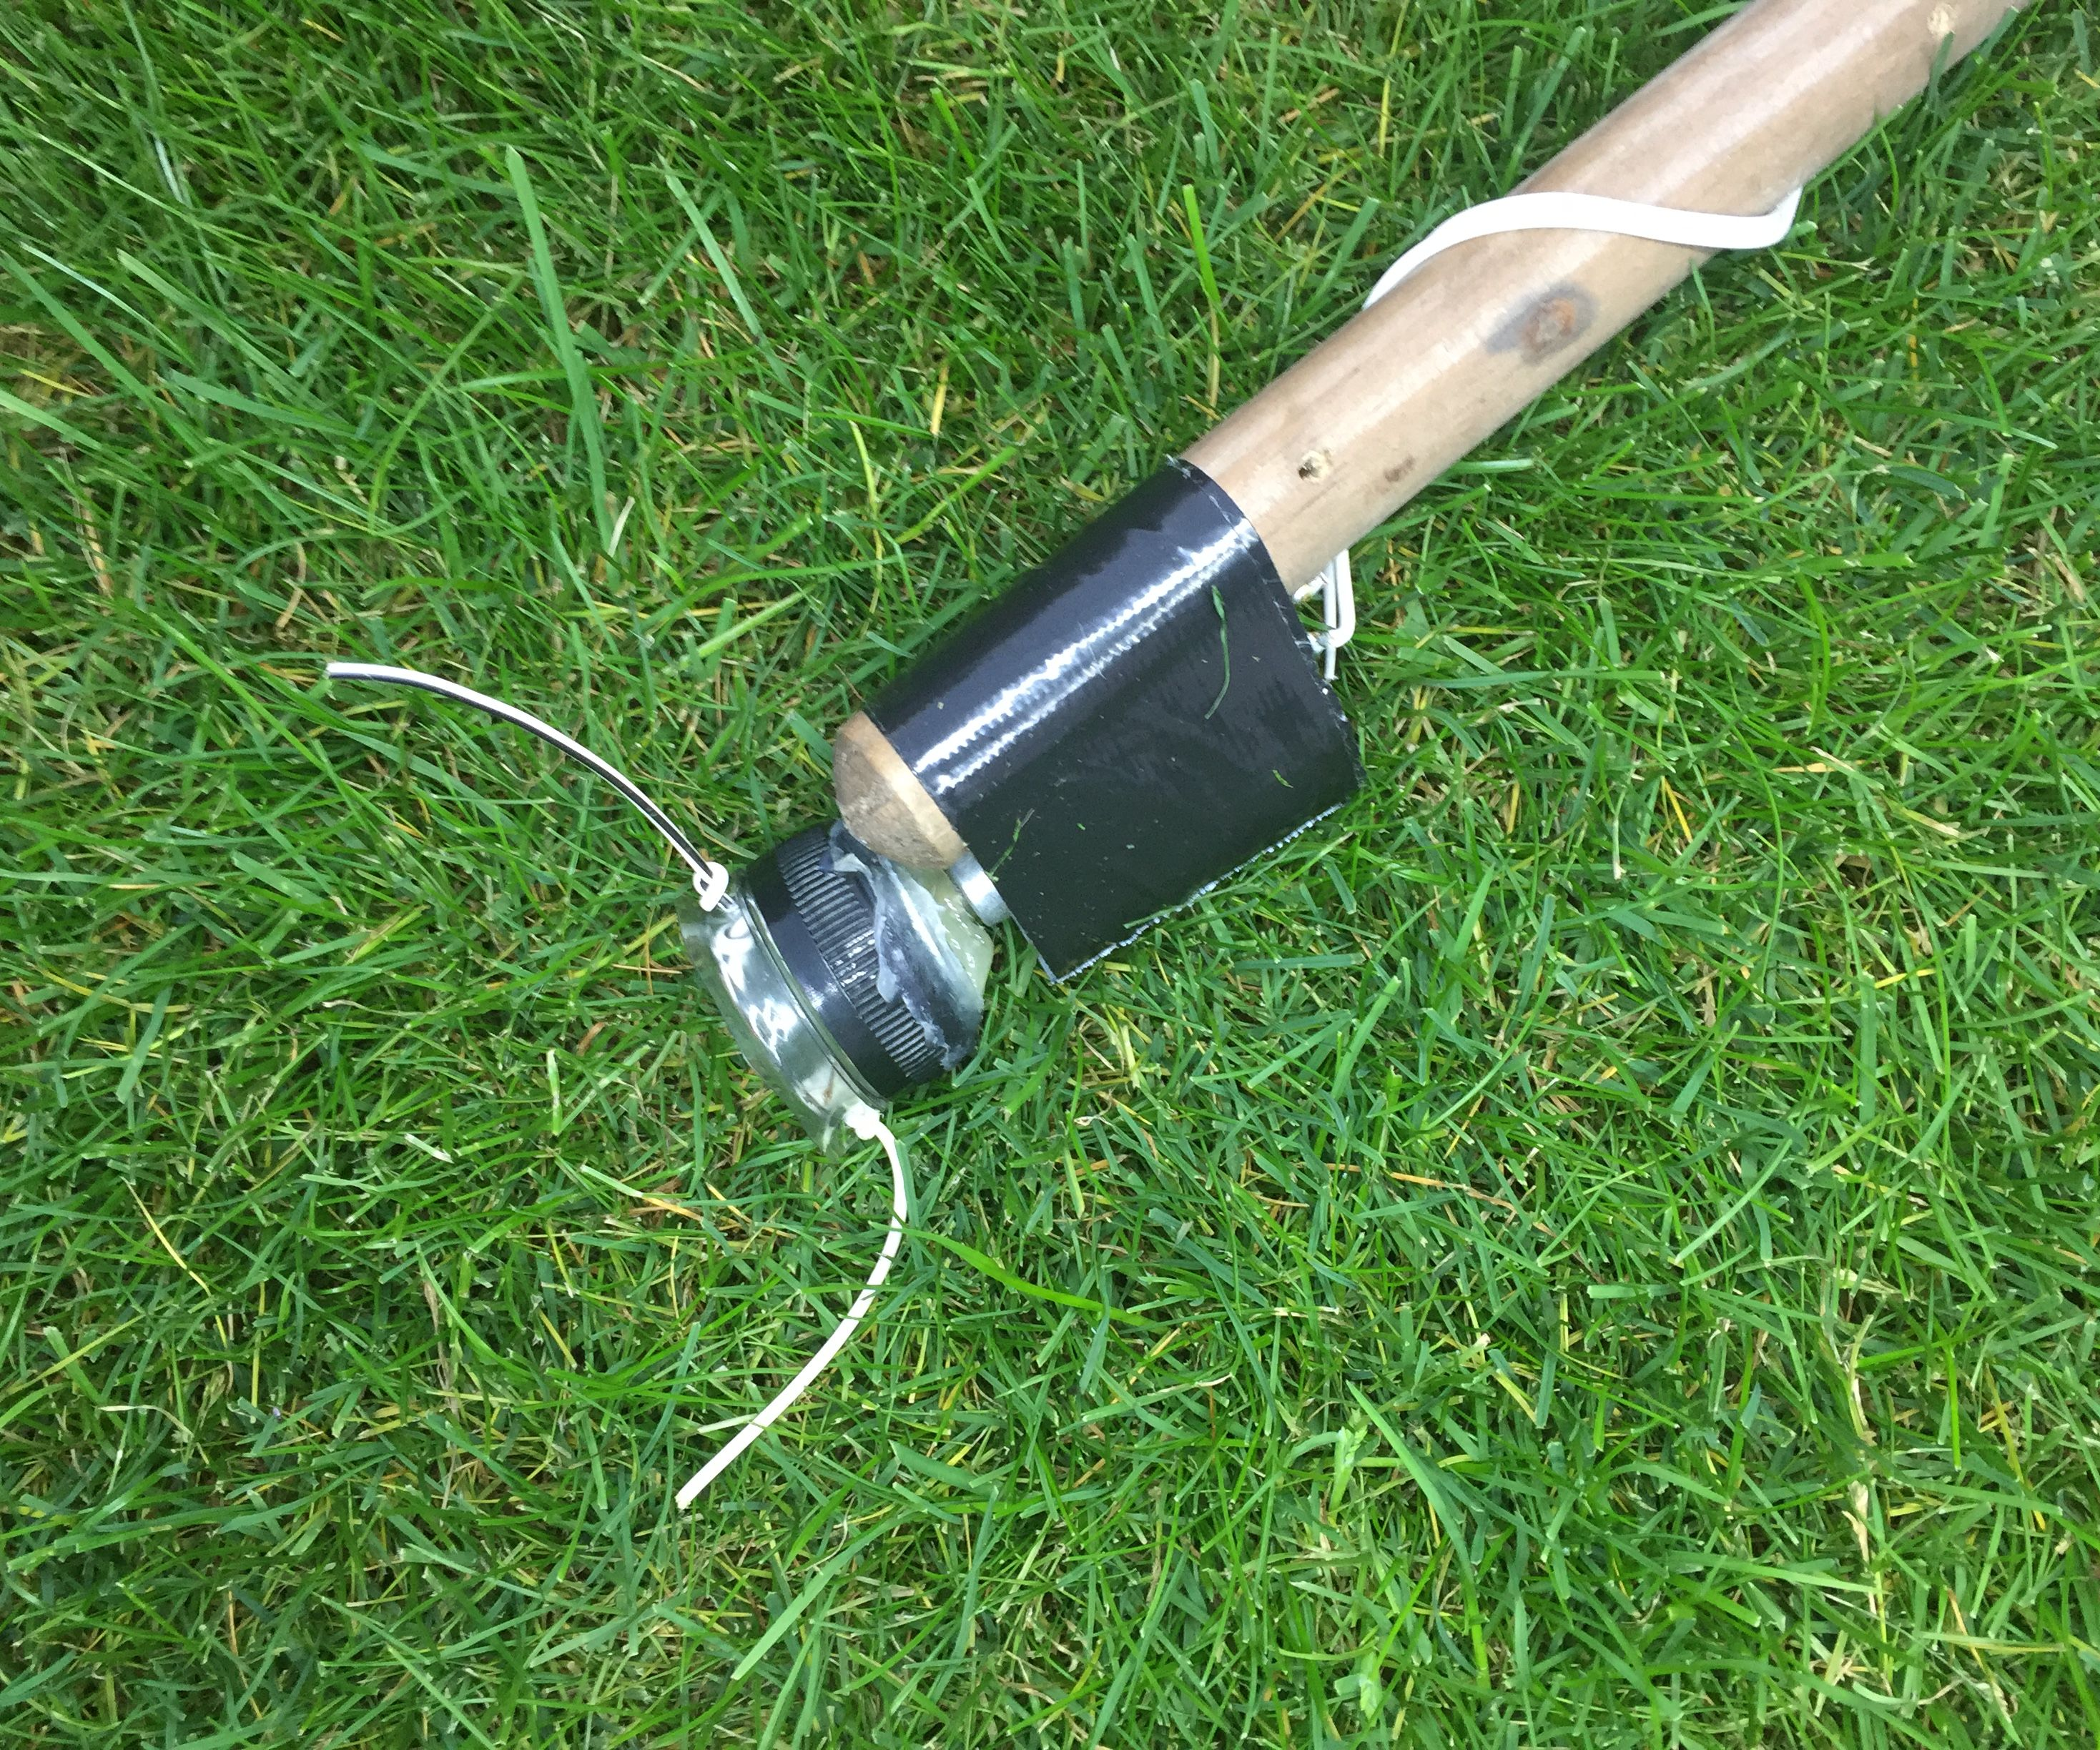 MAKE a WEED EATER / Whacker / Strimmer - on a Budget! (ALSO IN CHINEESIUM) 如何做低預算的除草機